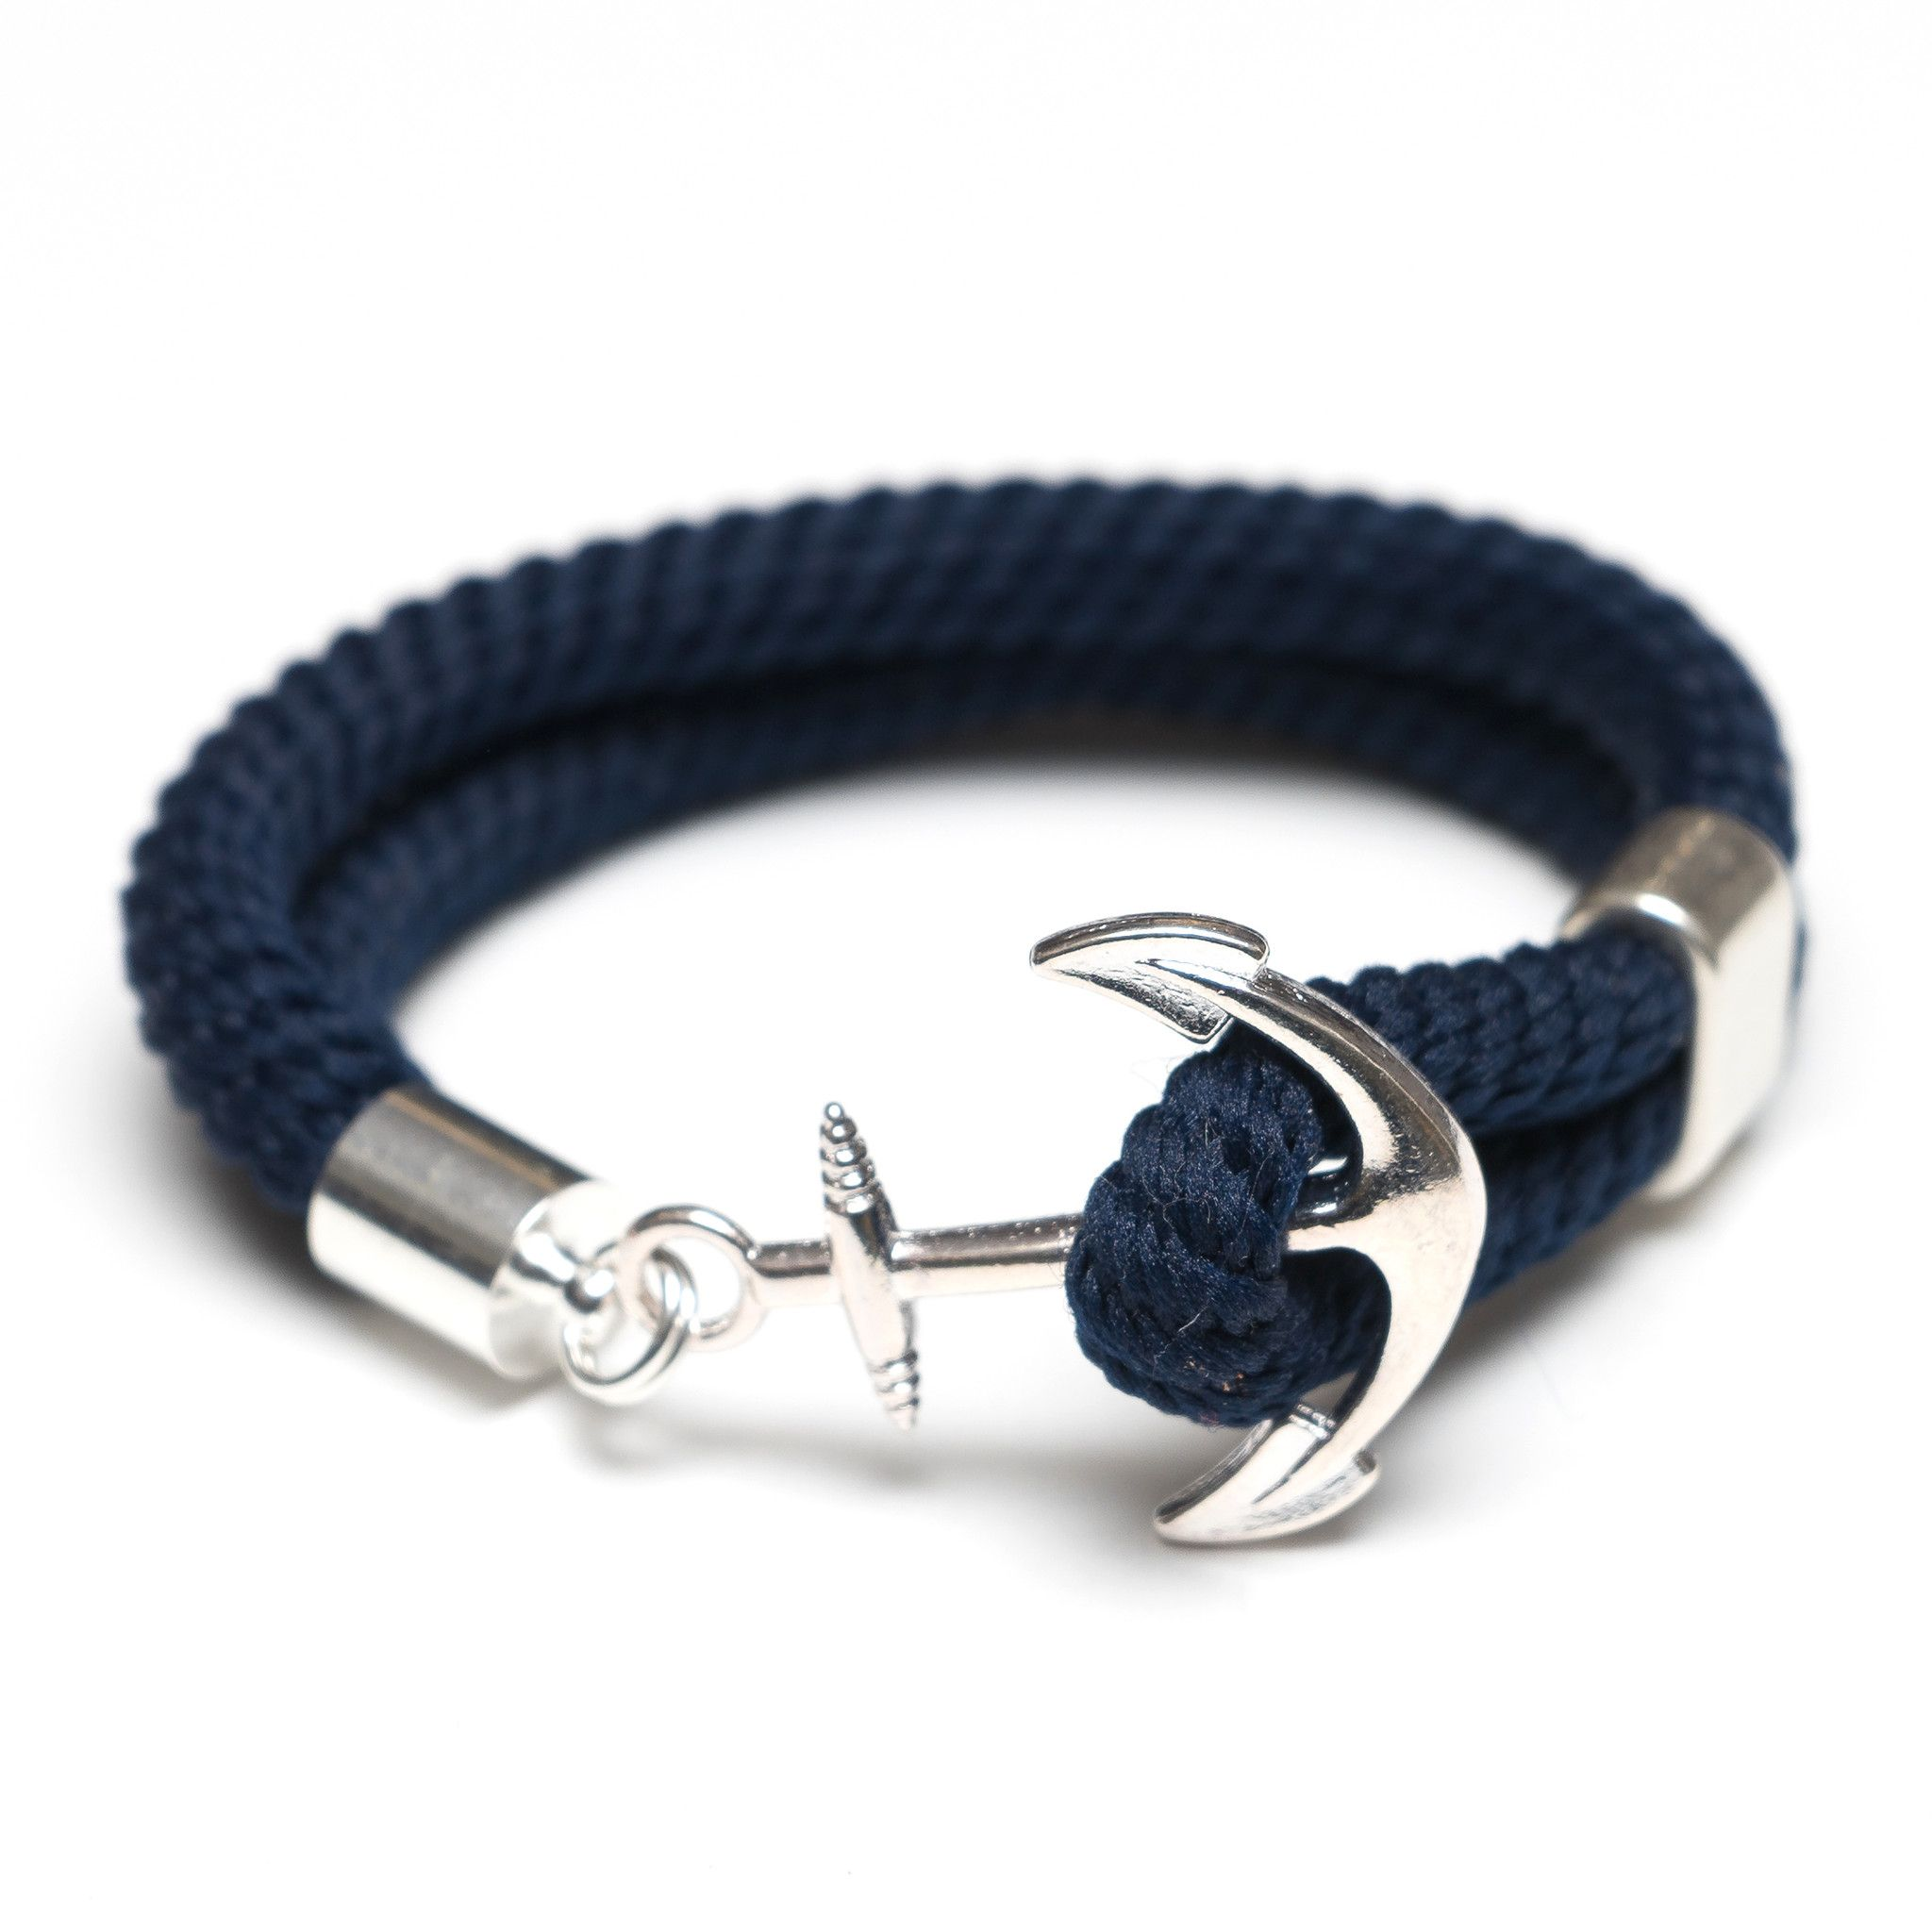 charger black sailormadeusa mens men marine s collections bracelet cord nautical rope matte